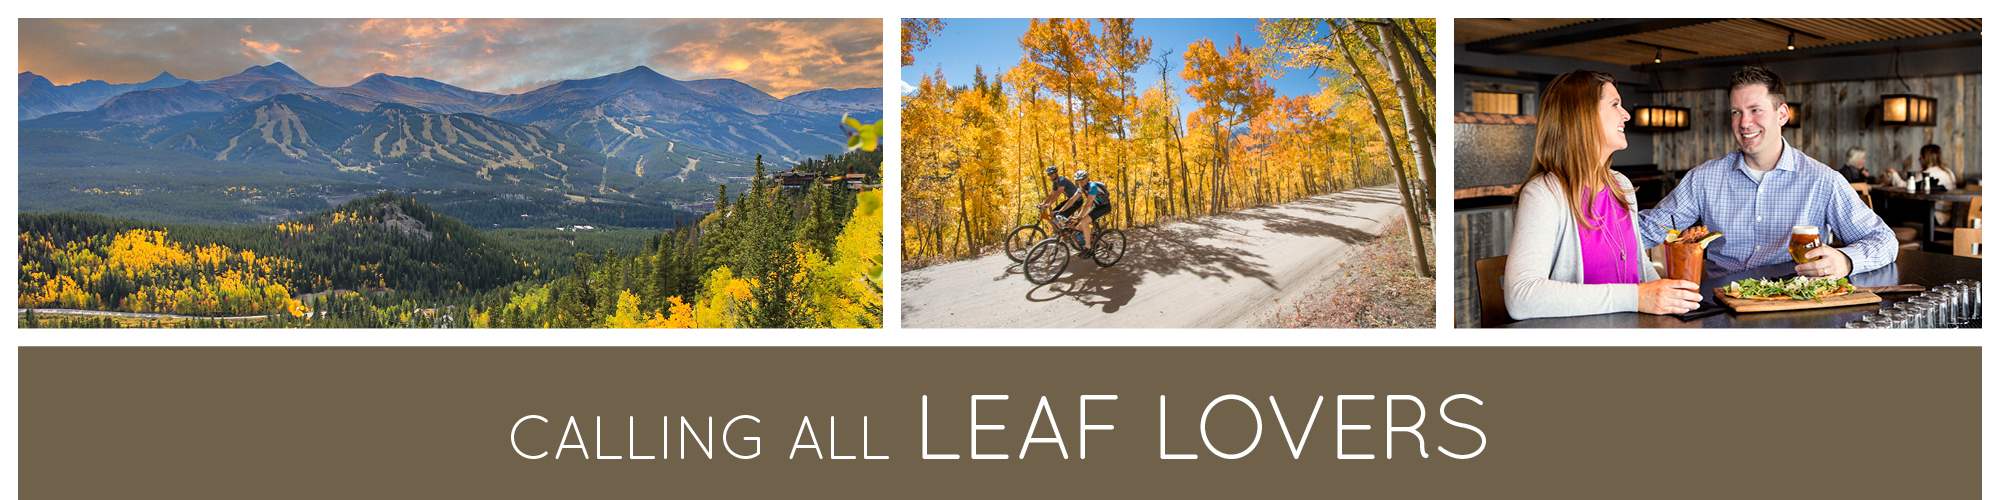 Calling All Leaf Lovers